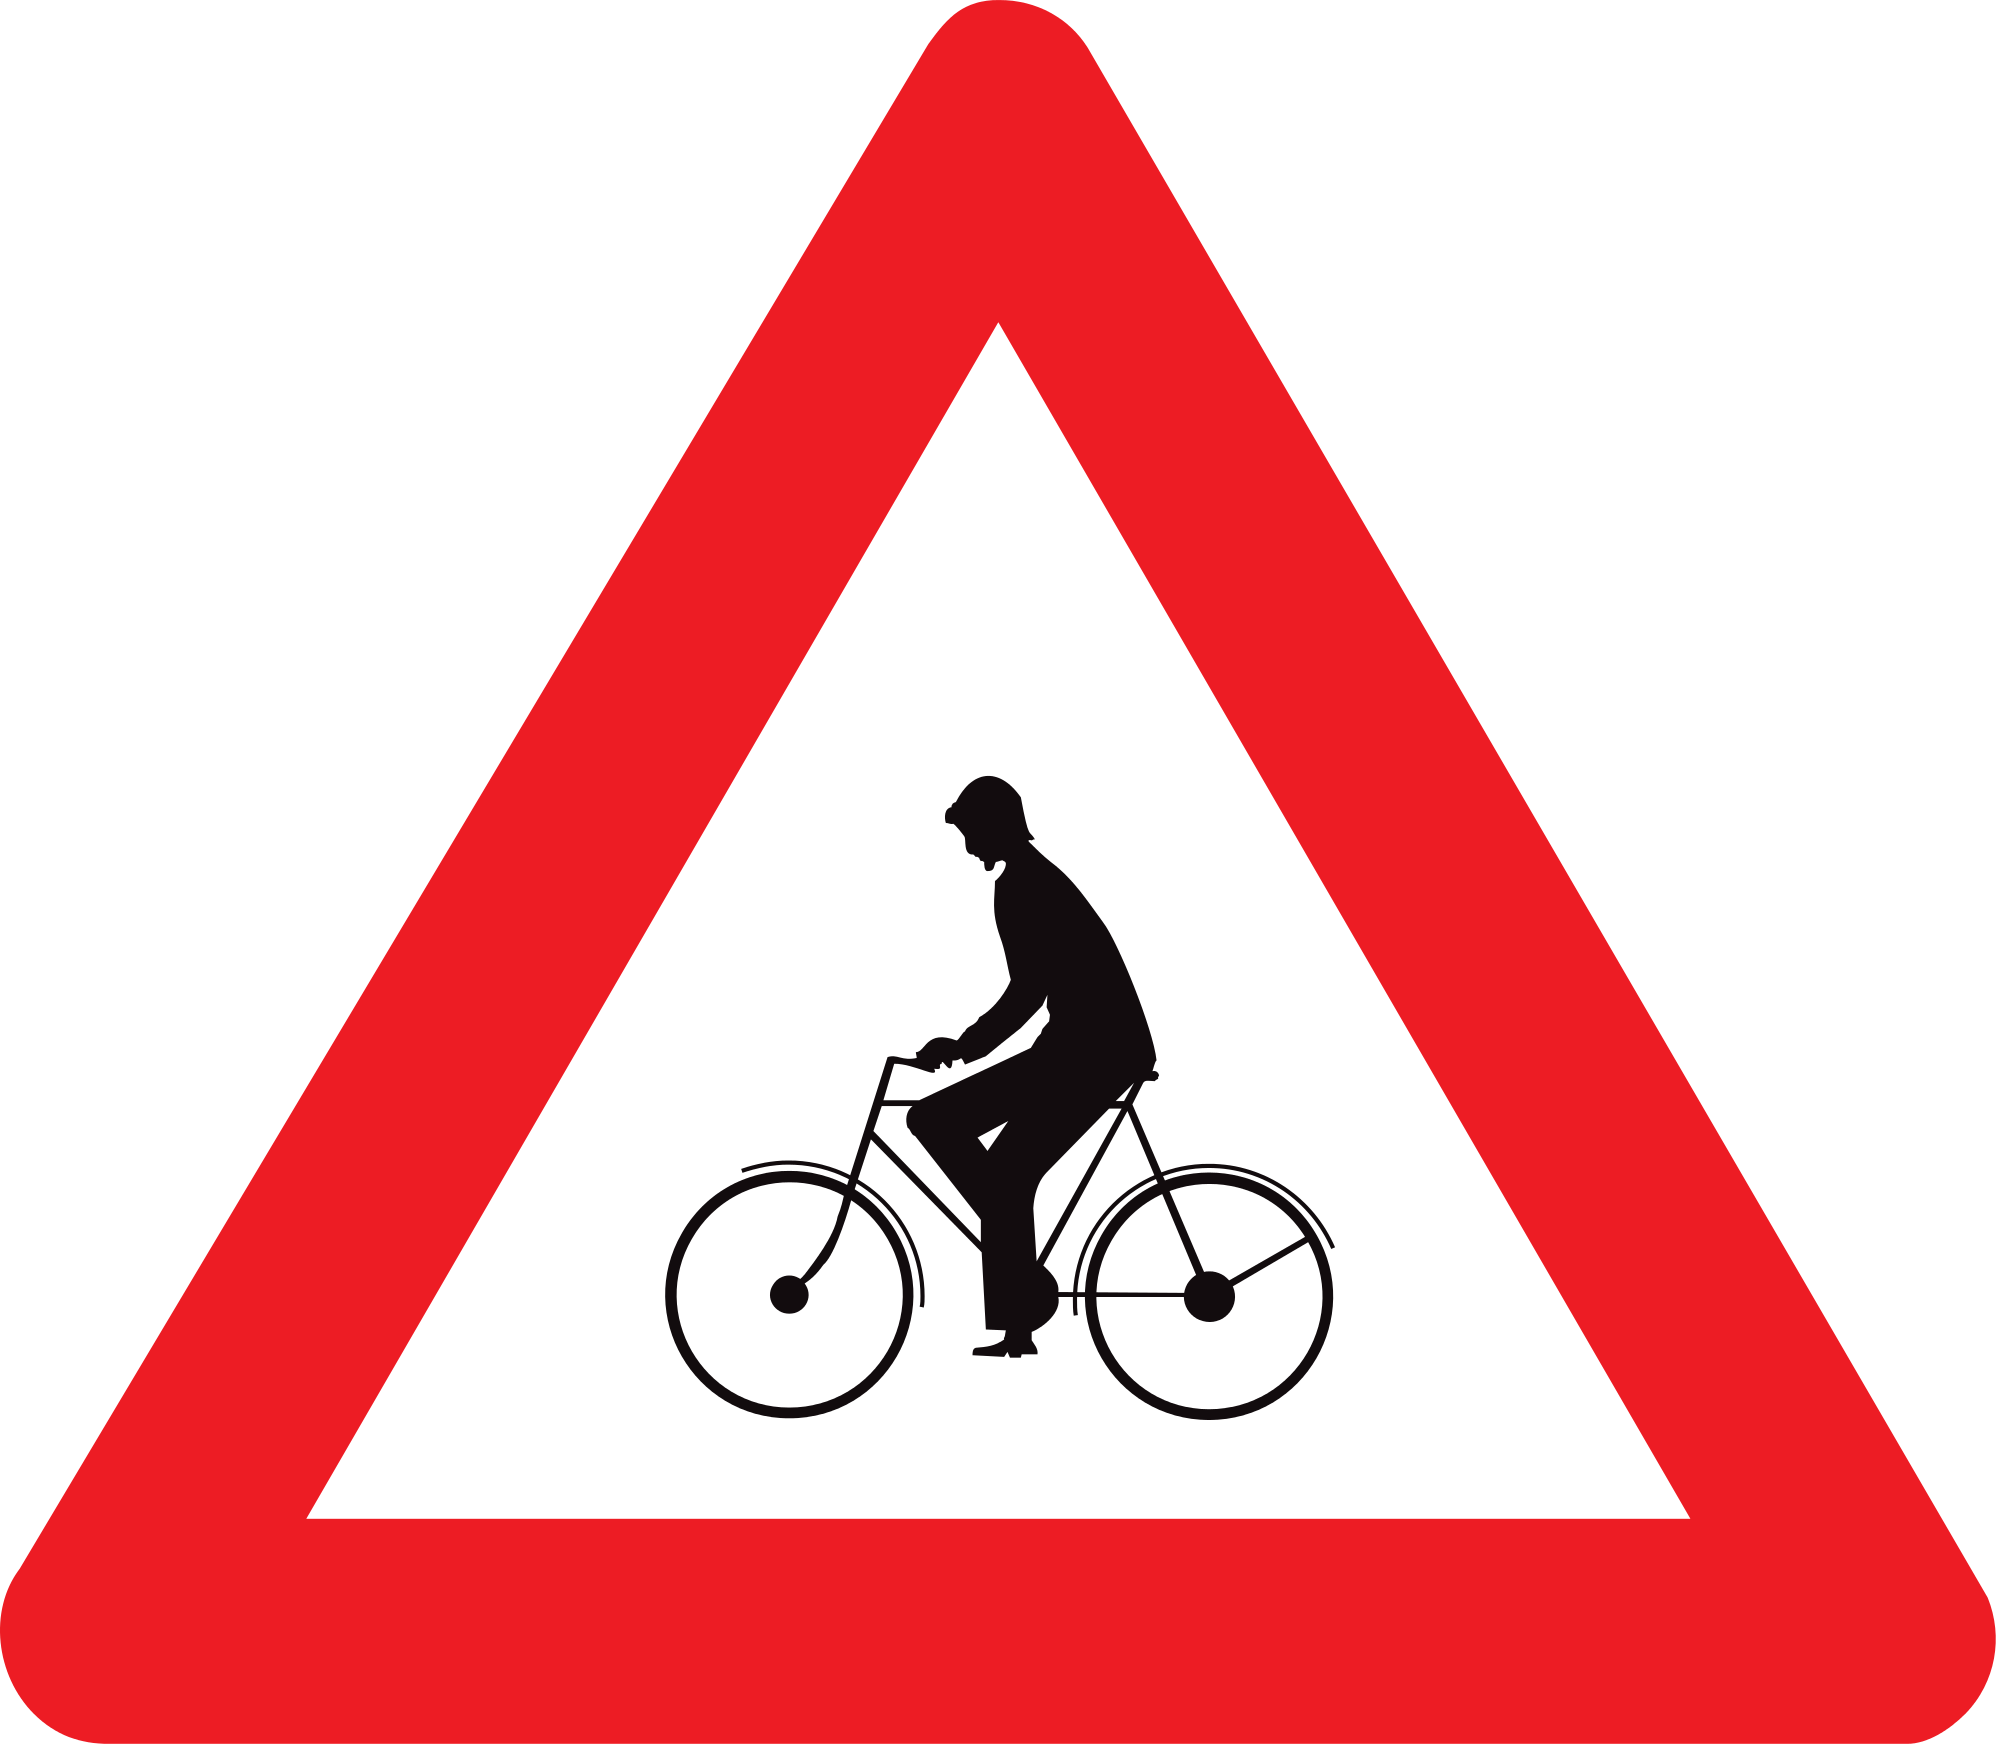 File:Belgian road sign A25.svg.